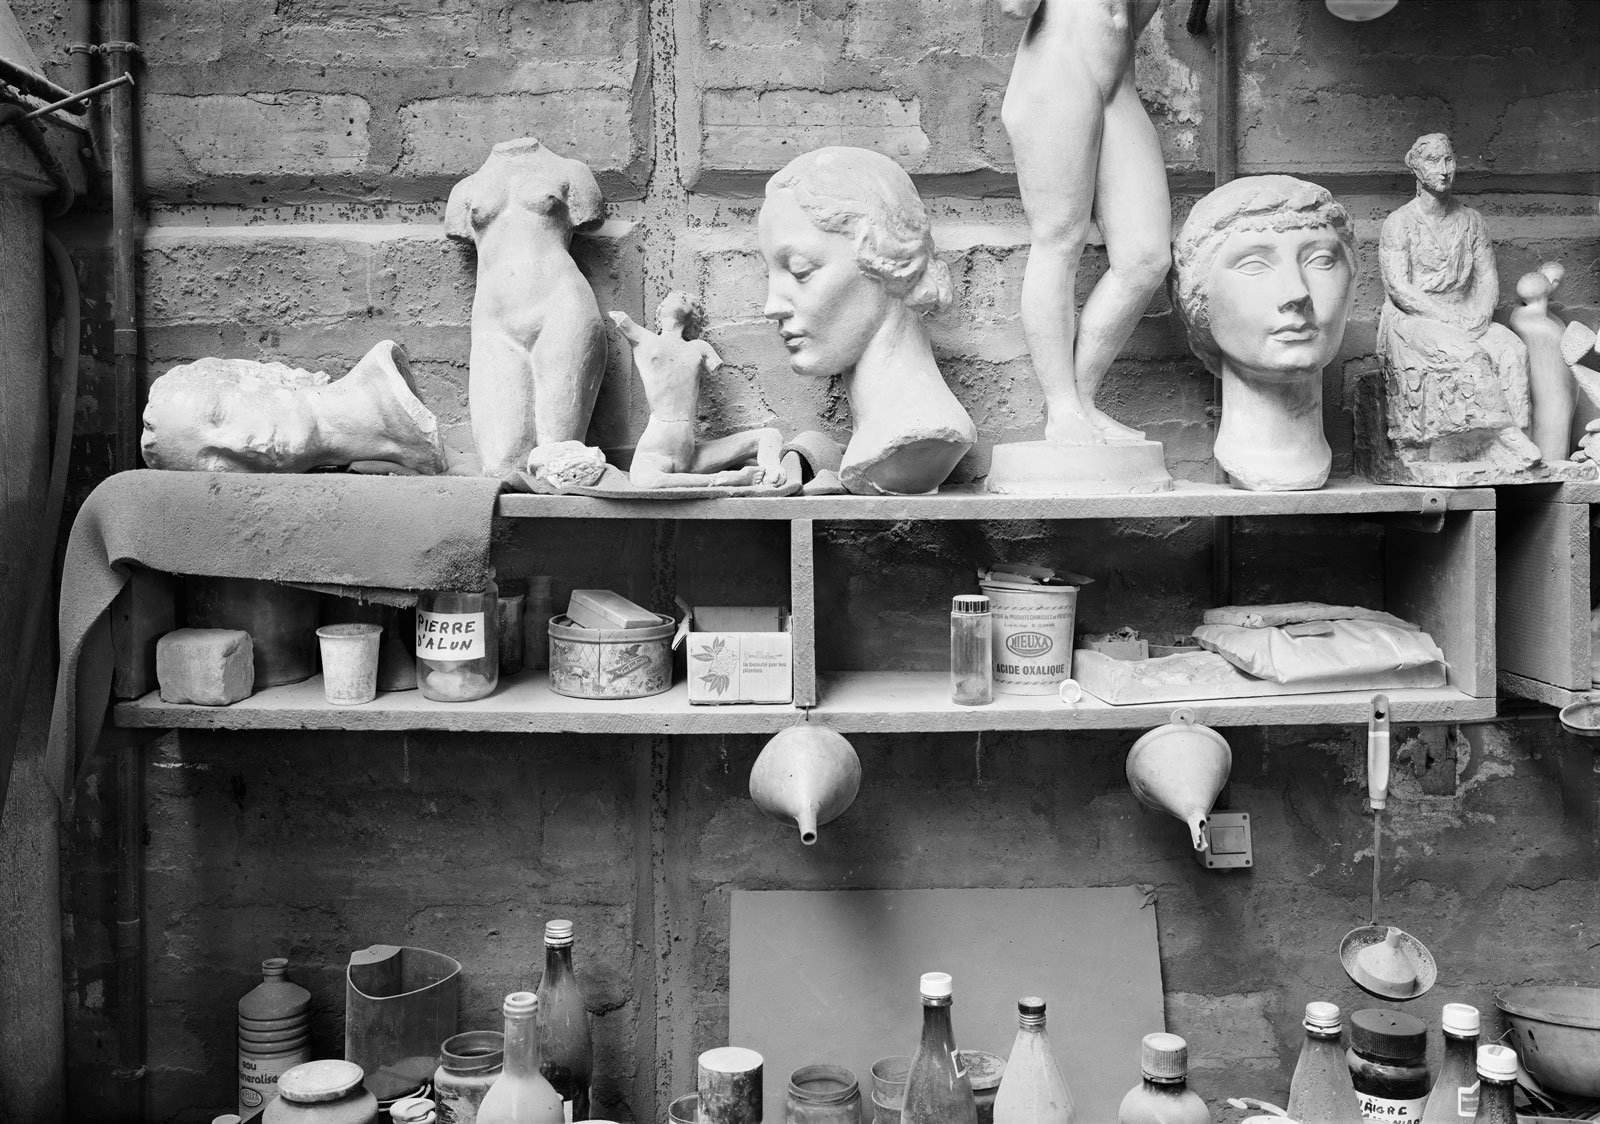 Sculptures of busts and body parts sitting on a shelf, in black and white